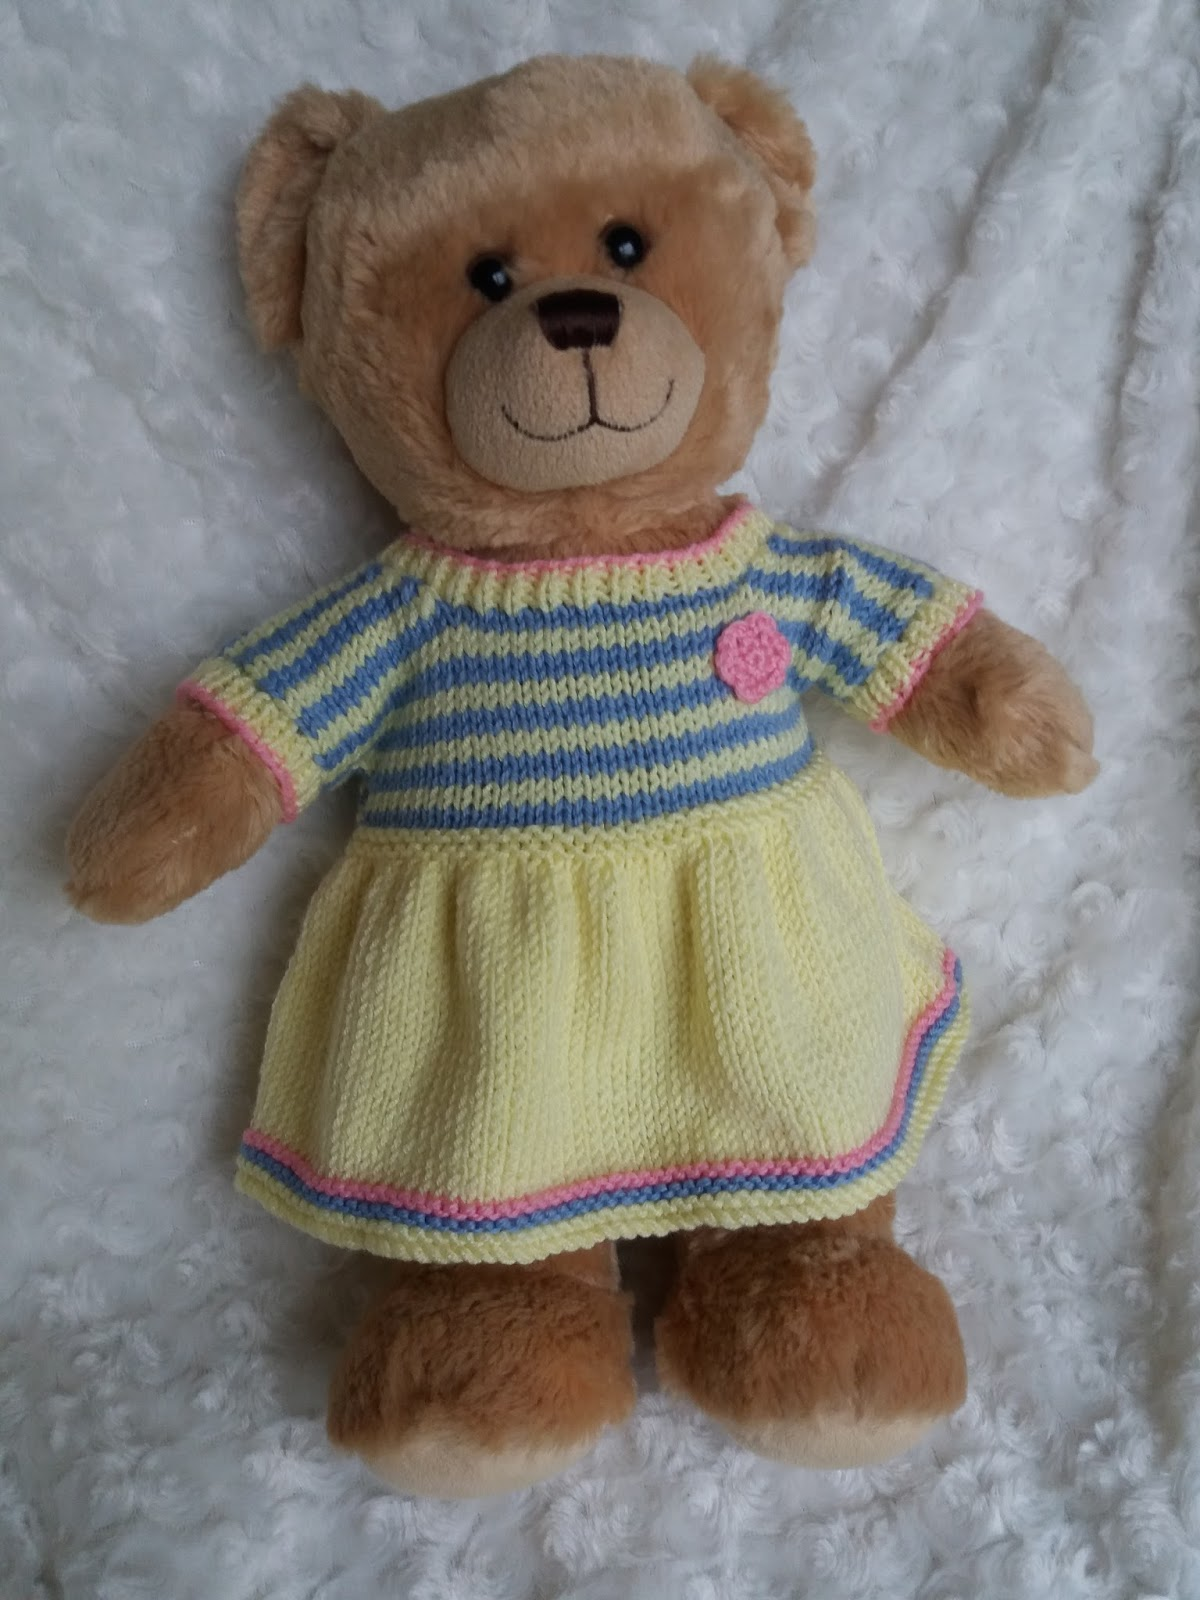 Linmary Knits: teddy bear striped dresses